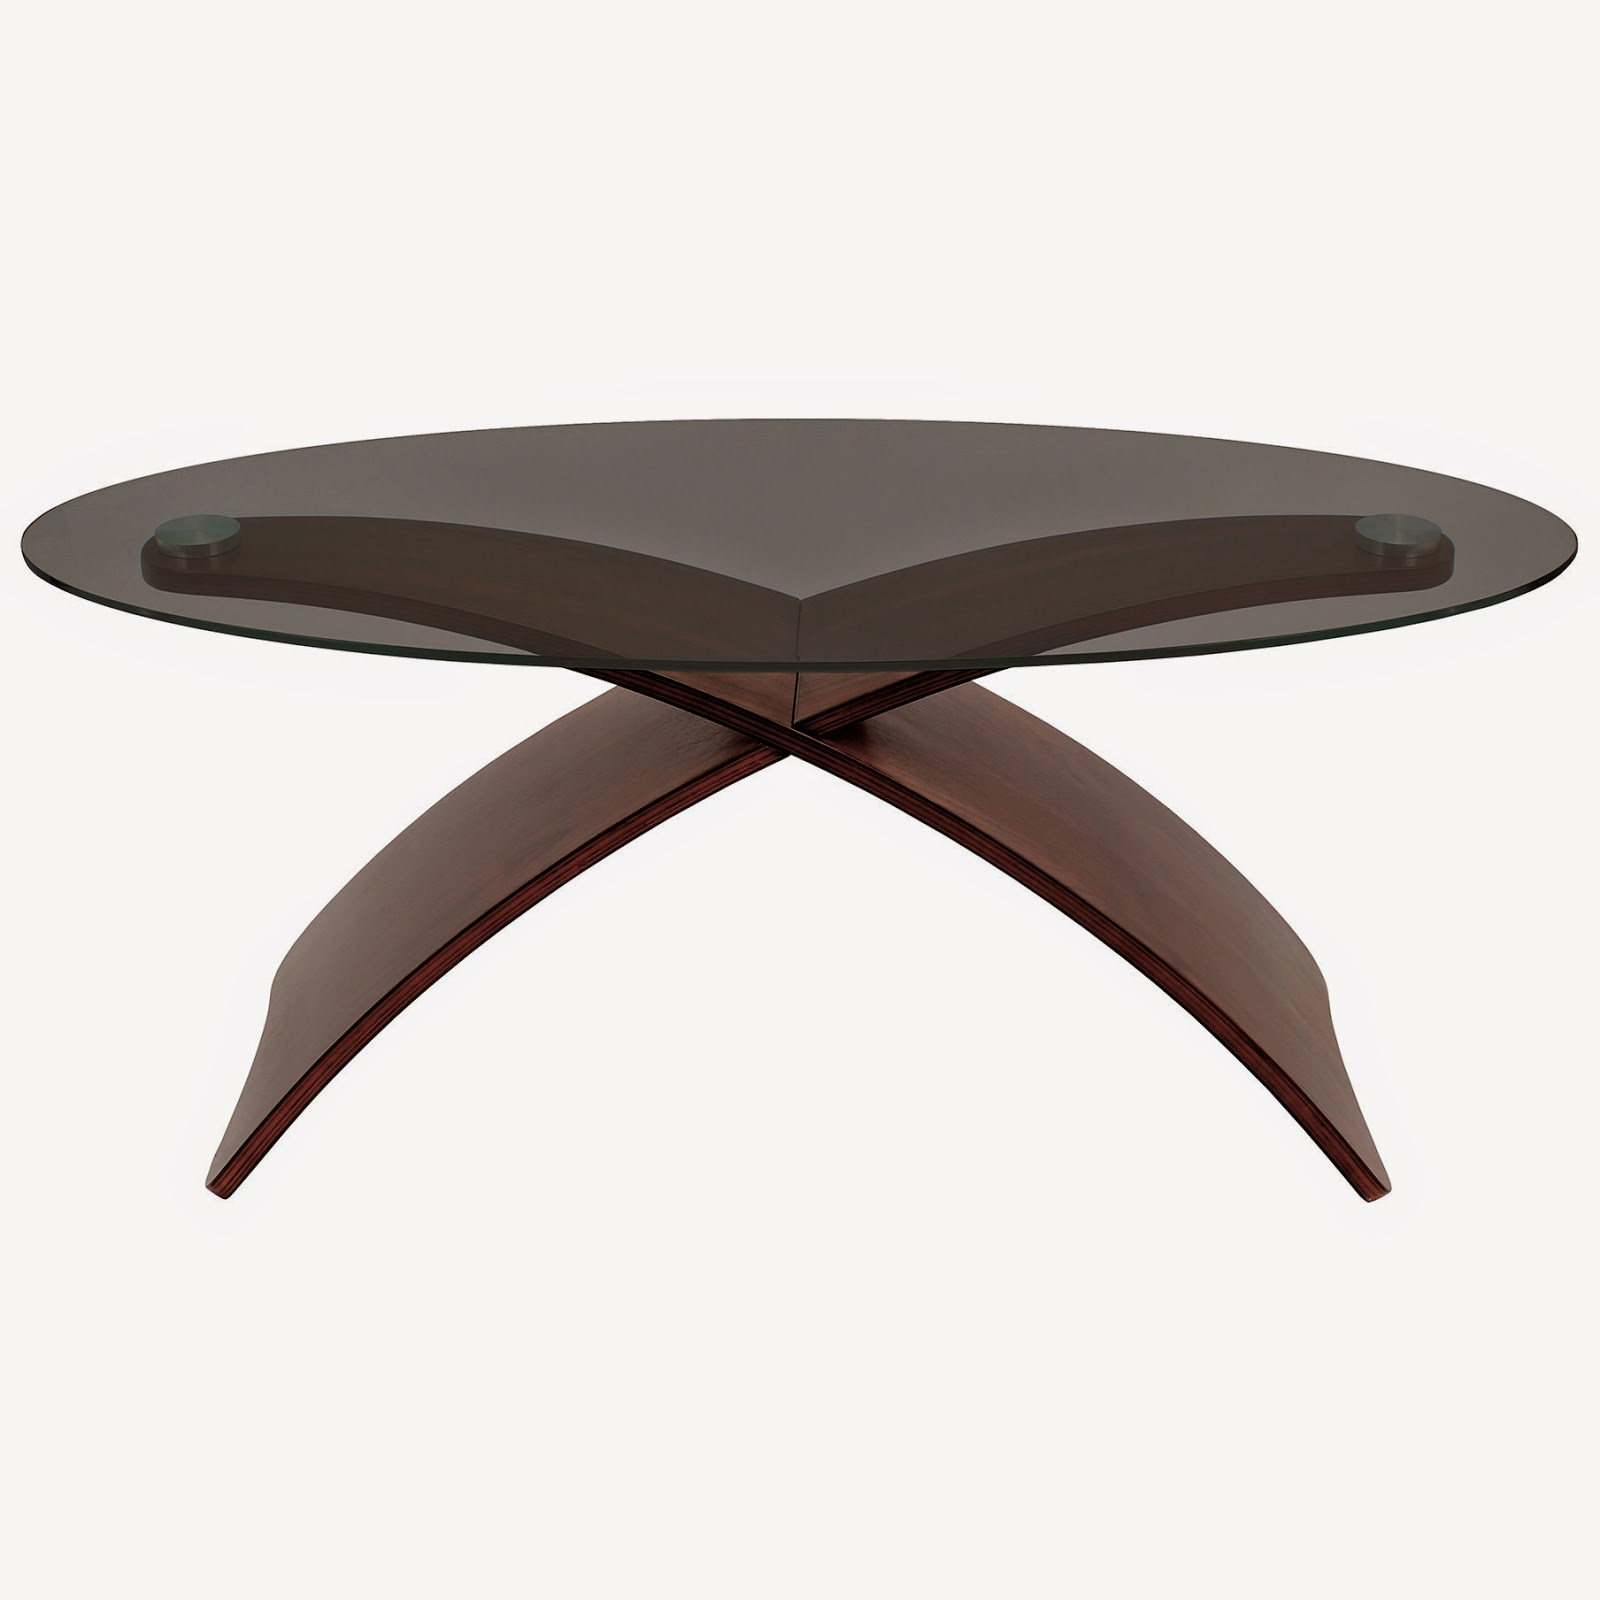 Oval Glass Coffee Table Modern Design Oval Glass Coffee Table